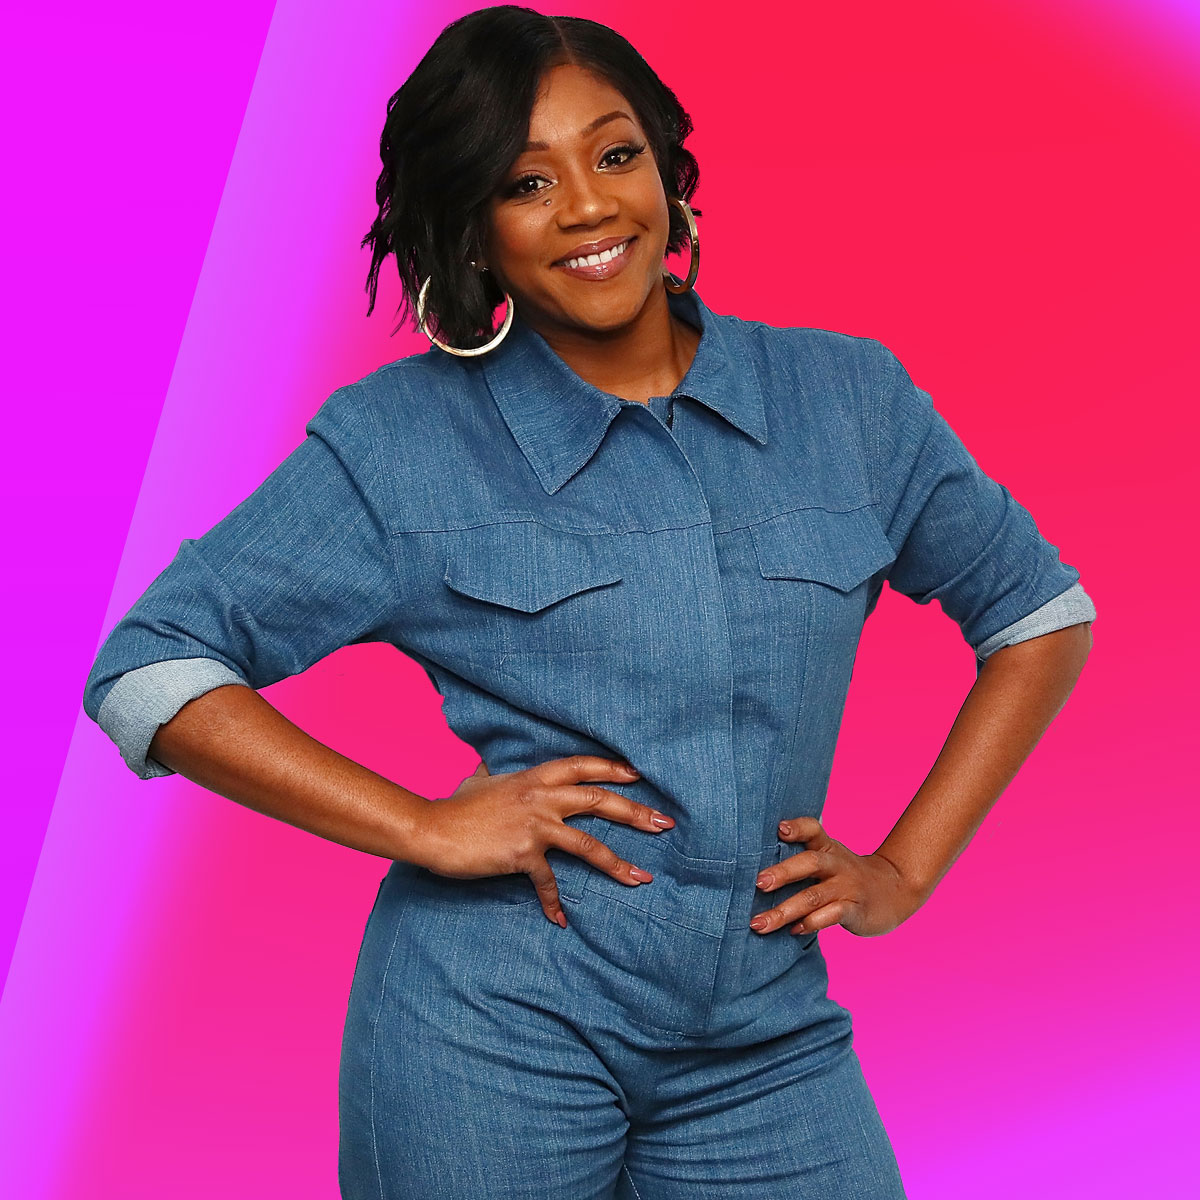 Tiffany Haddish Will Reportedly Produce Stand-Up Comedy Series For Netflix